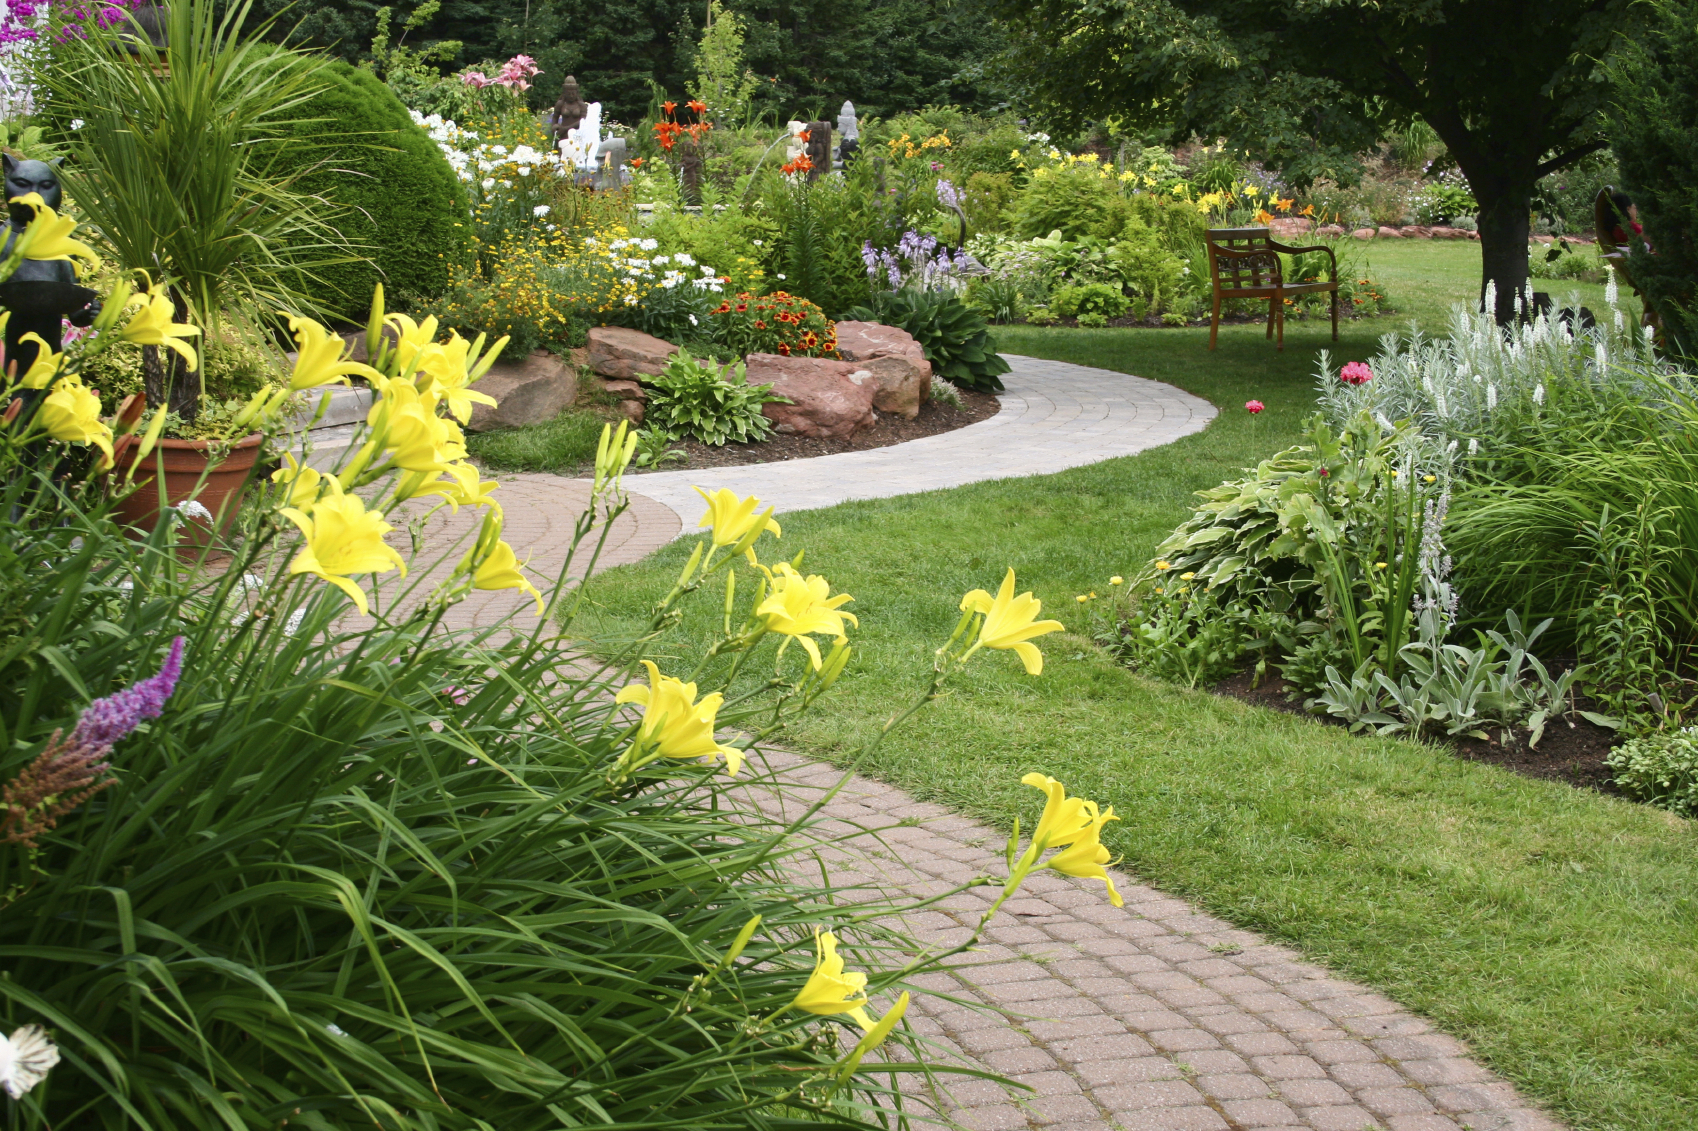 Landscaping services that keeps your property looking its best